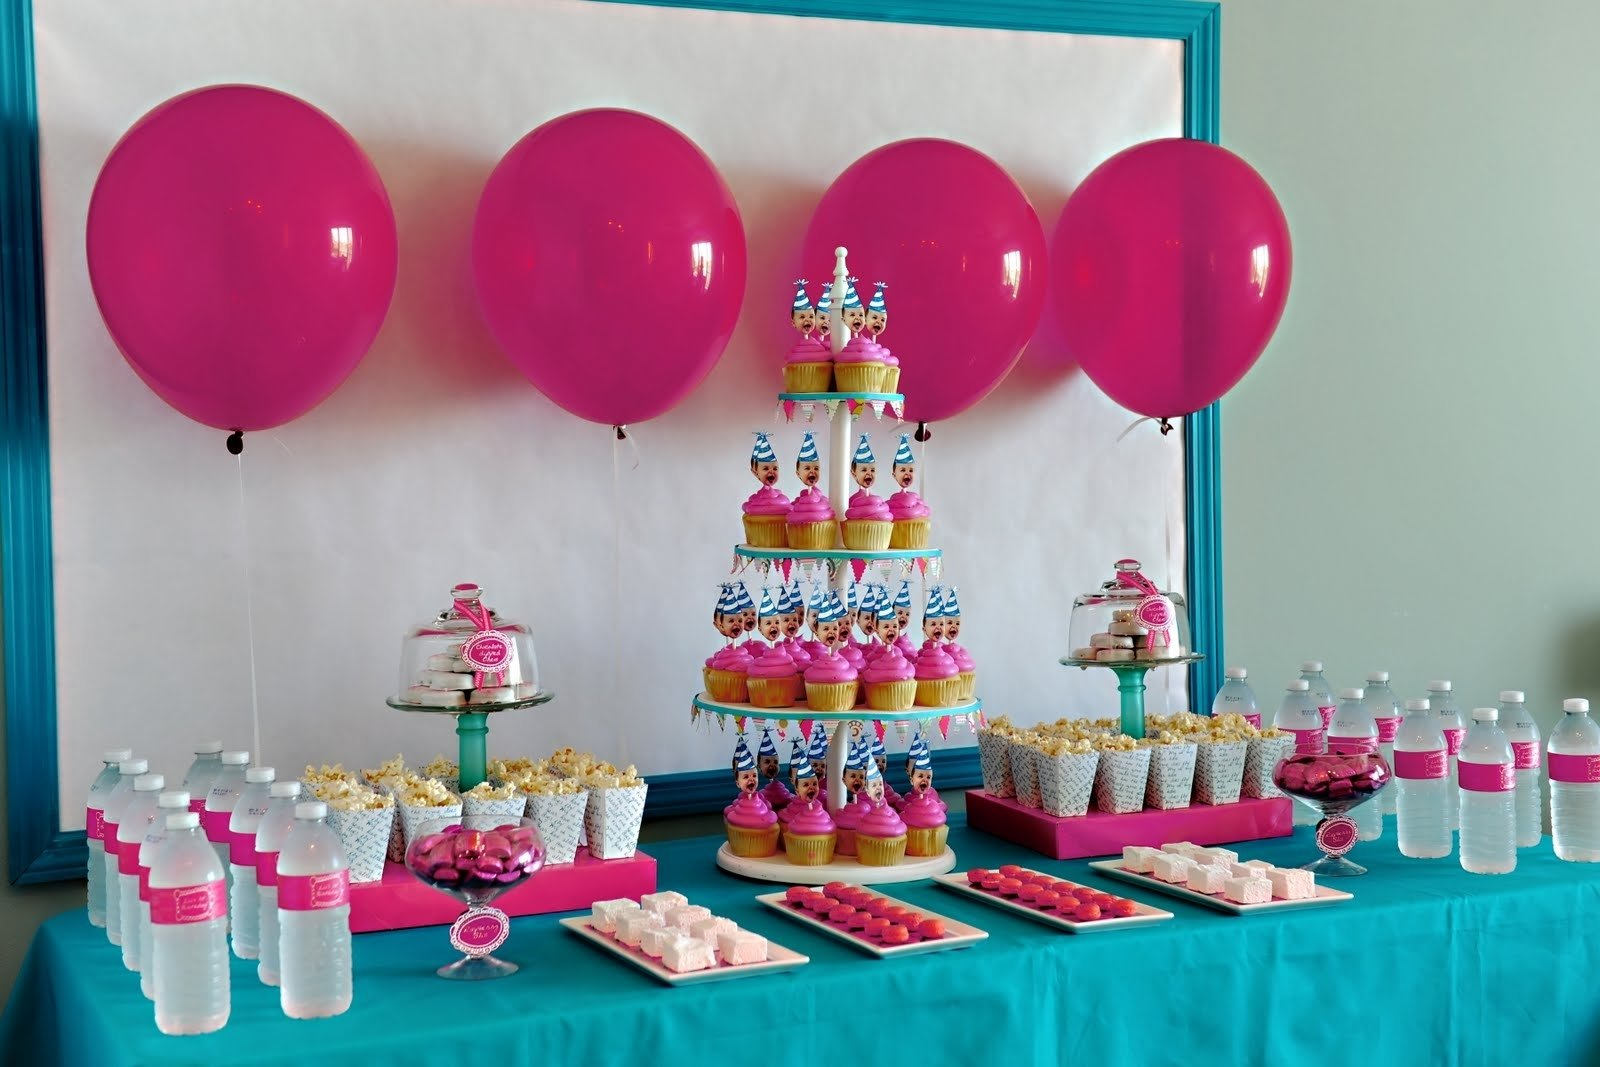 10 Stylish 2 Year Old Birthday Party Ideas Girl themes birthday 2 year old birthday party ideas houston together 3 2020